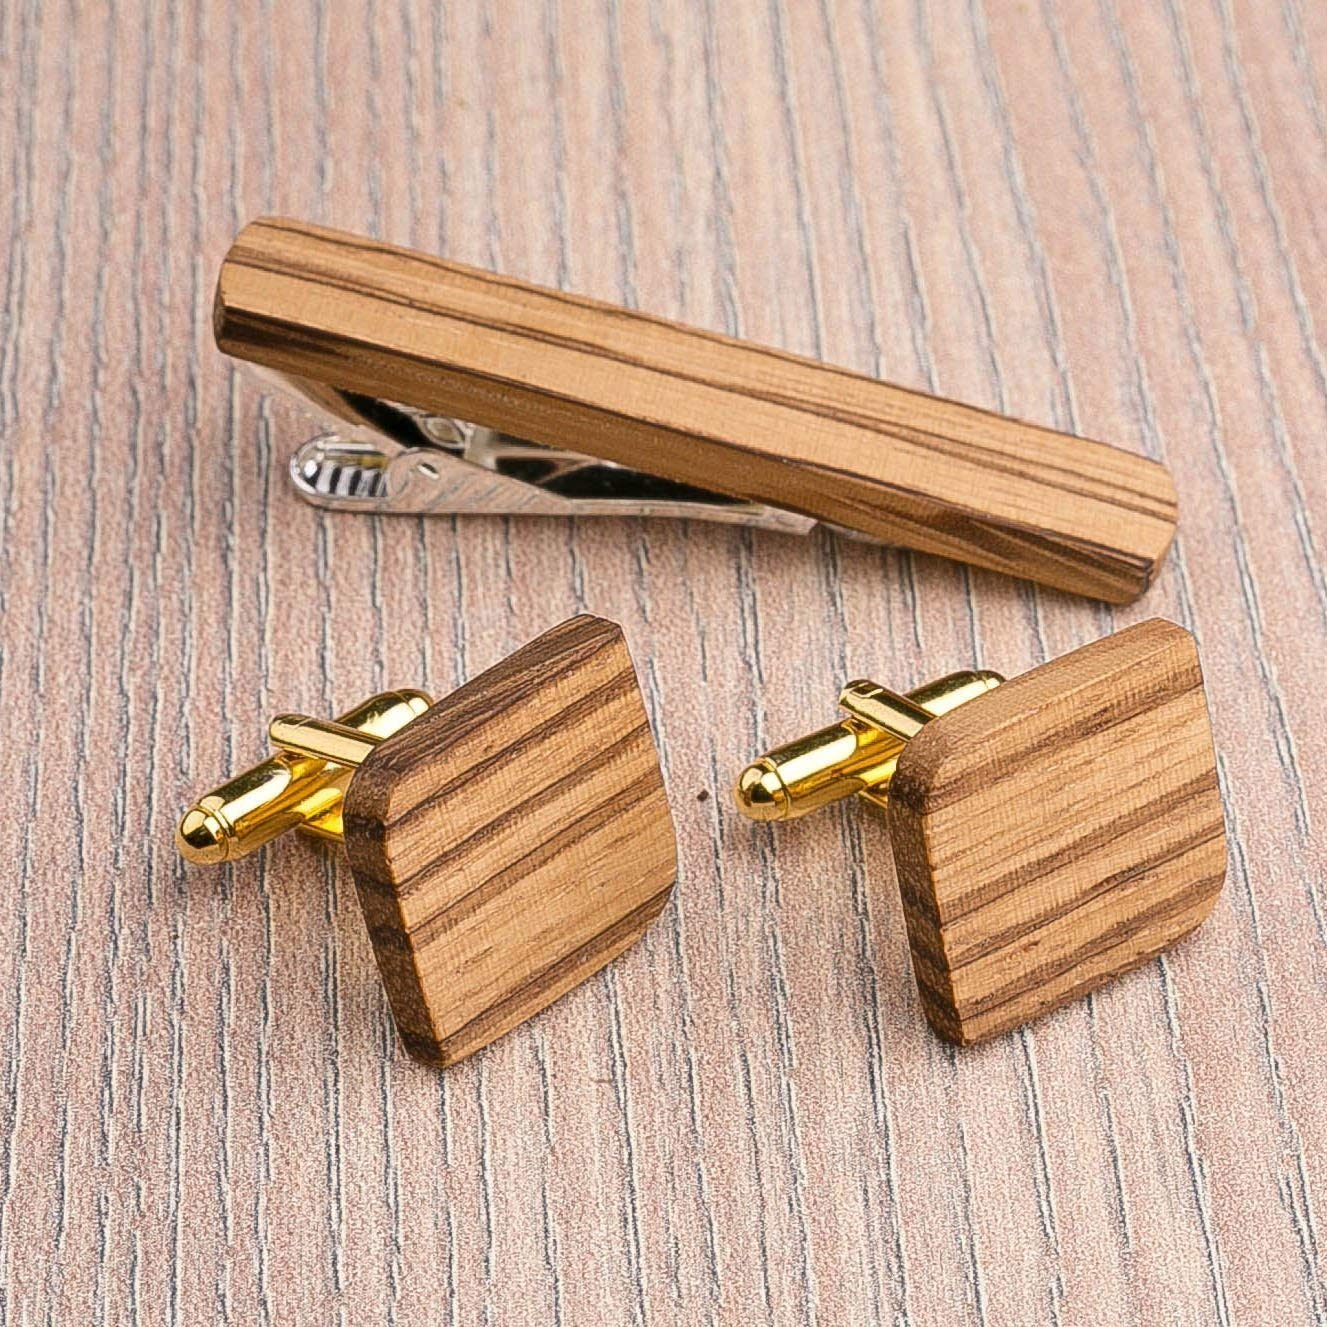 Rounded Square Wood Cufflinks and Tie Clip Set. Multicolor Zebrano wood. Custom personalized initial monogram men gift. Engraved jewelry for men. Wedding groomsmen groom gifts. Exclusive Boss gift